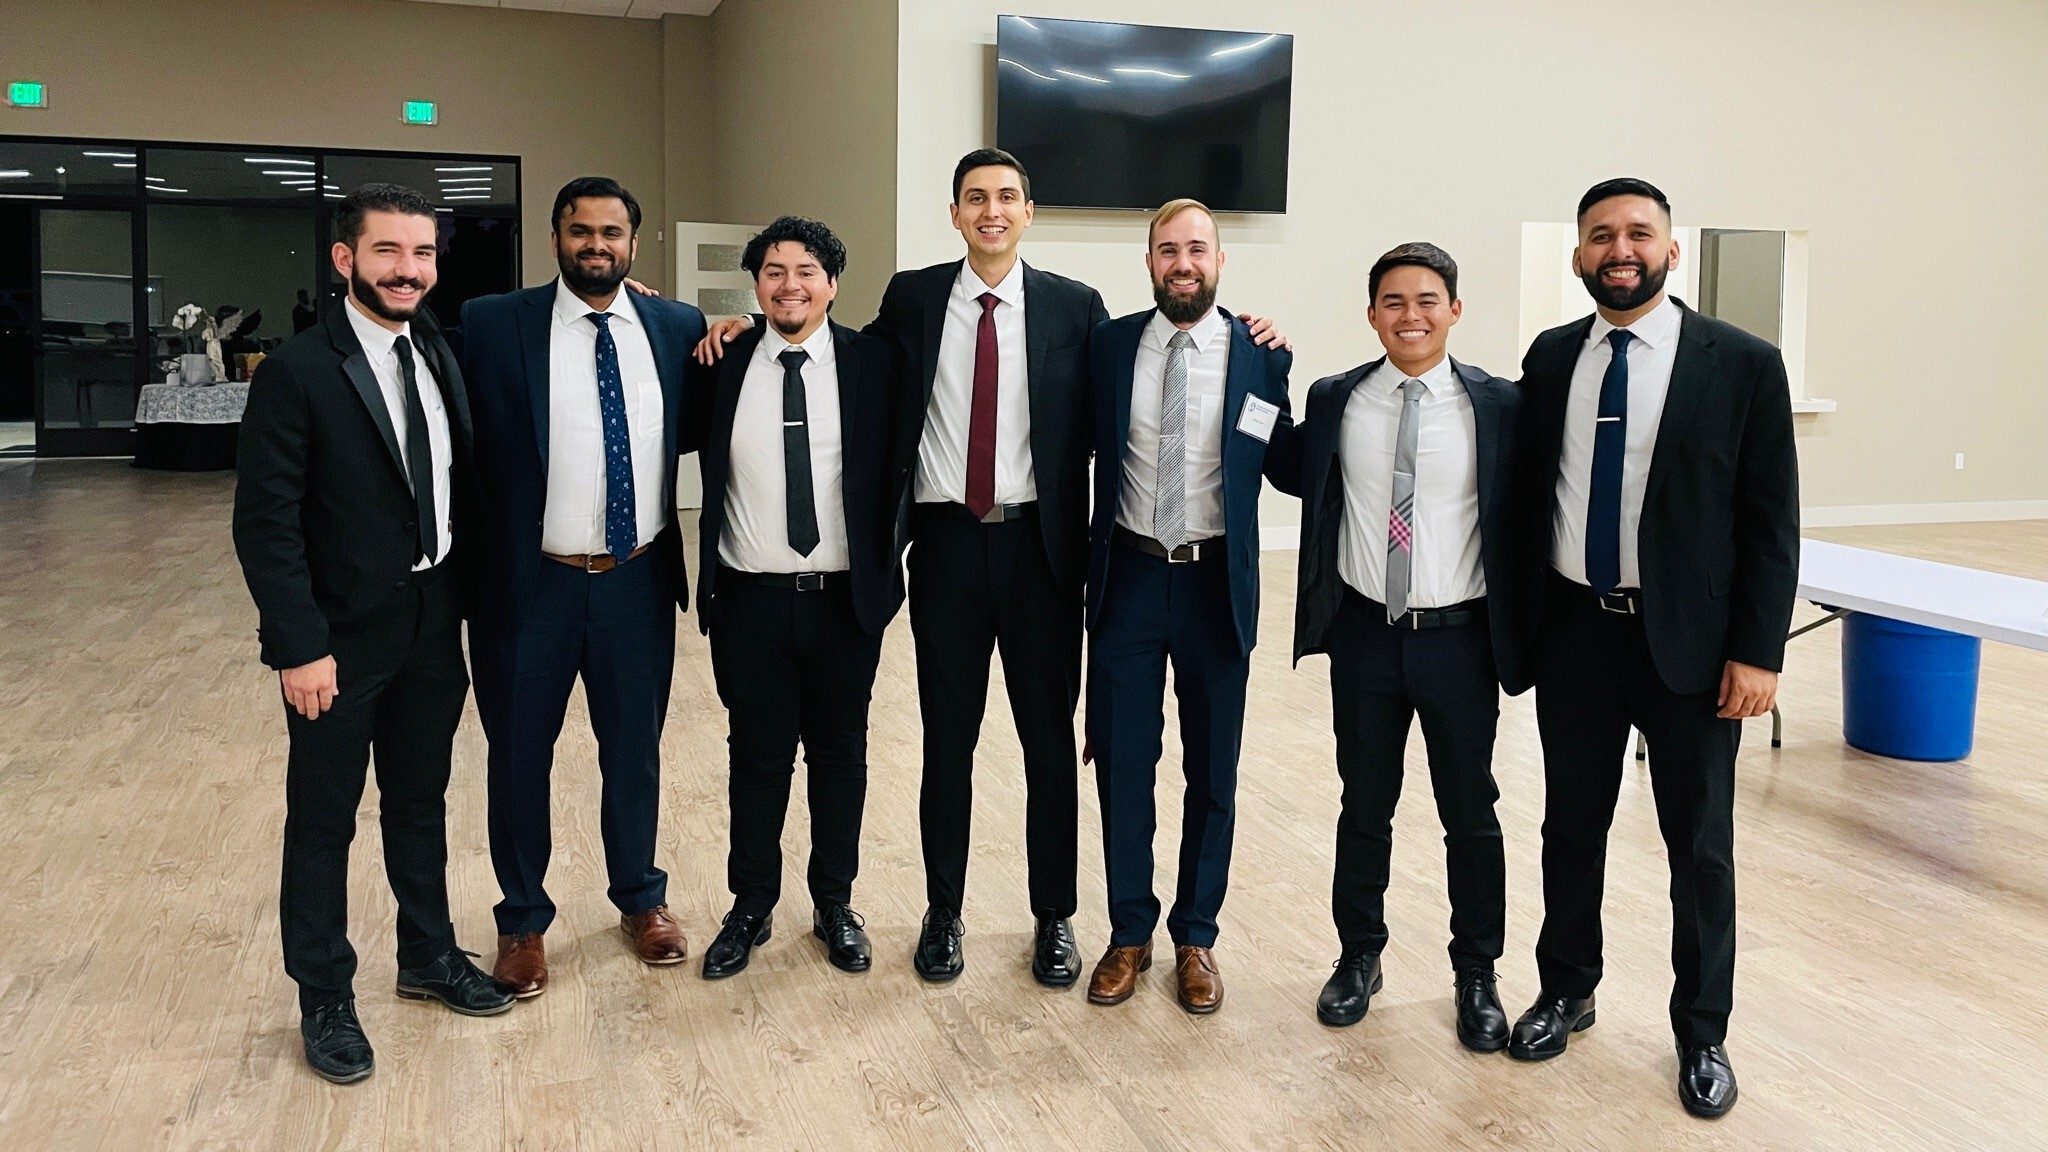 September 2021 - We now have SEVEN seminarians who are studying at St. Patrick's Seminary in Menlo Park.